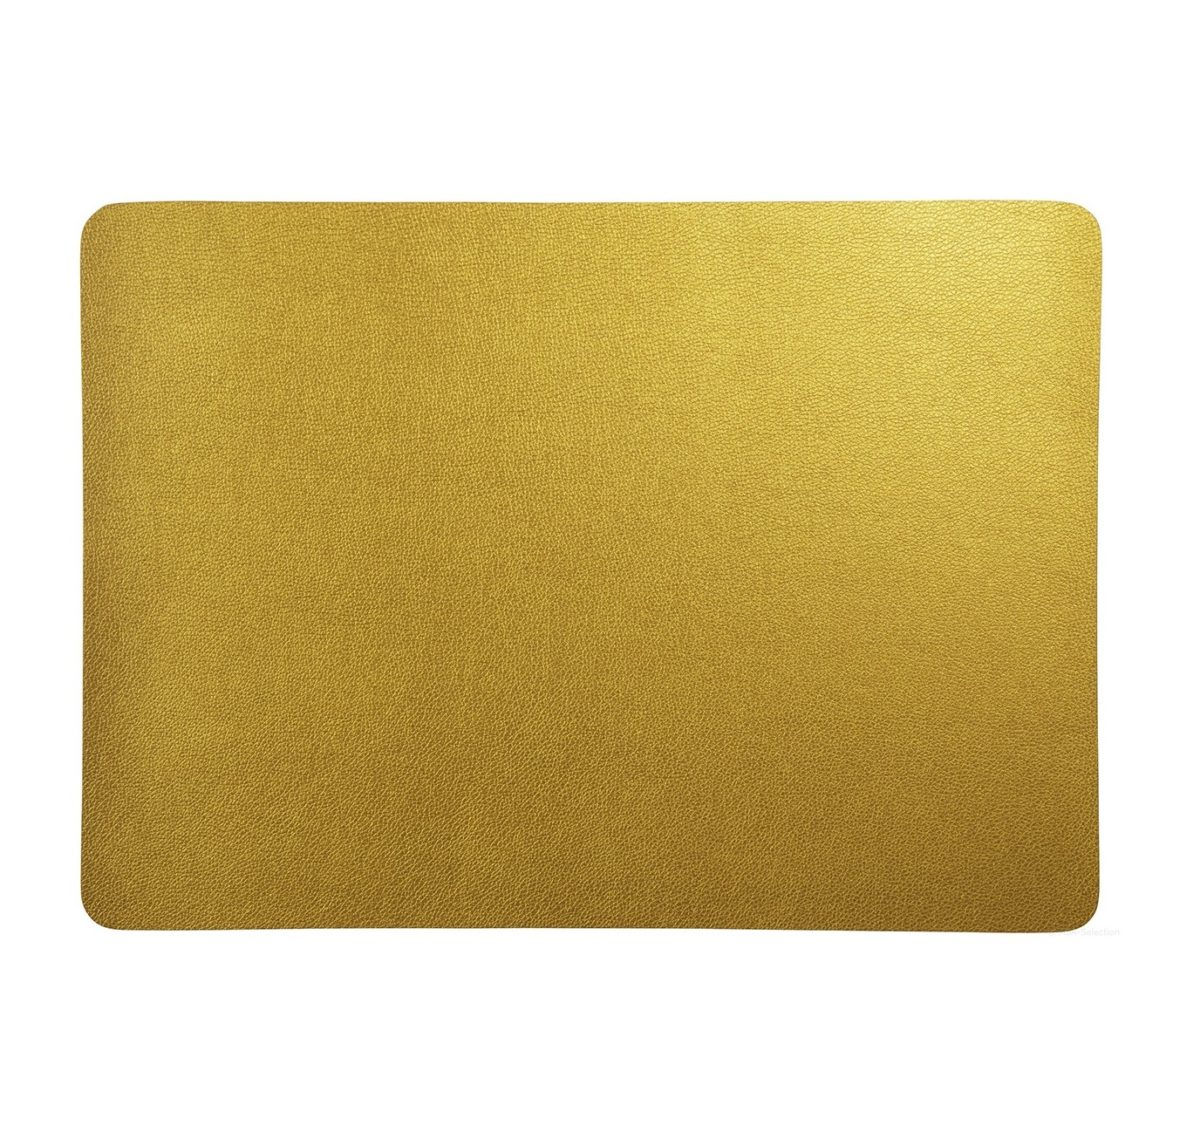 7812420 gold 1200x1139 - Placemat Leather optic metallic gold 46*33 cm (7812420)